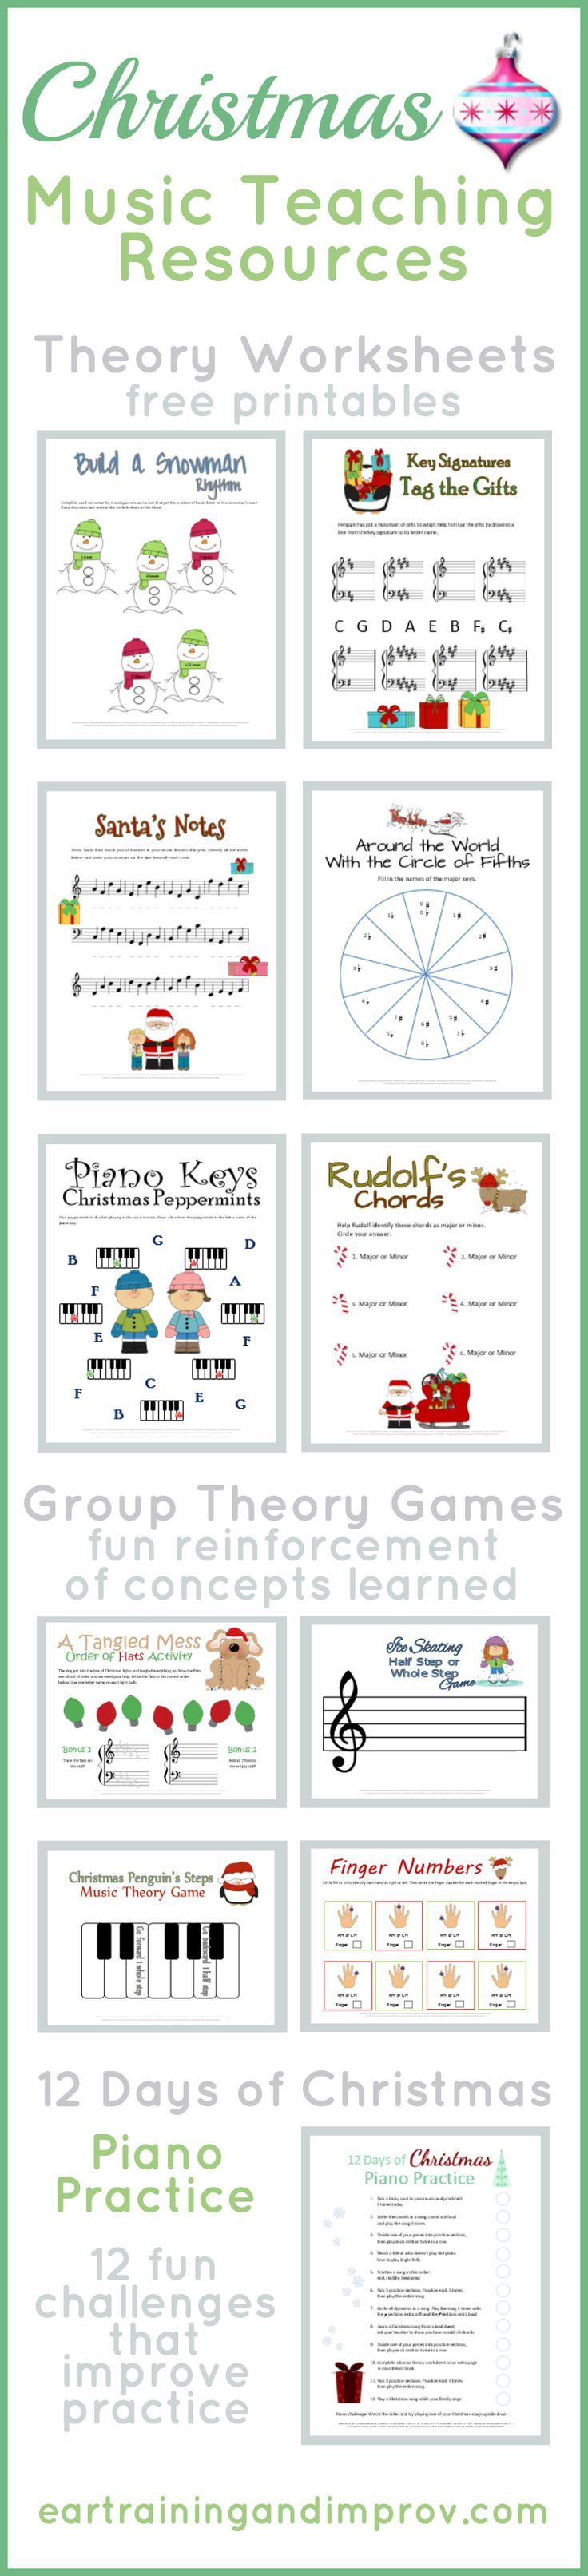 Christmas Music Worksheets Paired With Fun Group Game